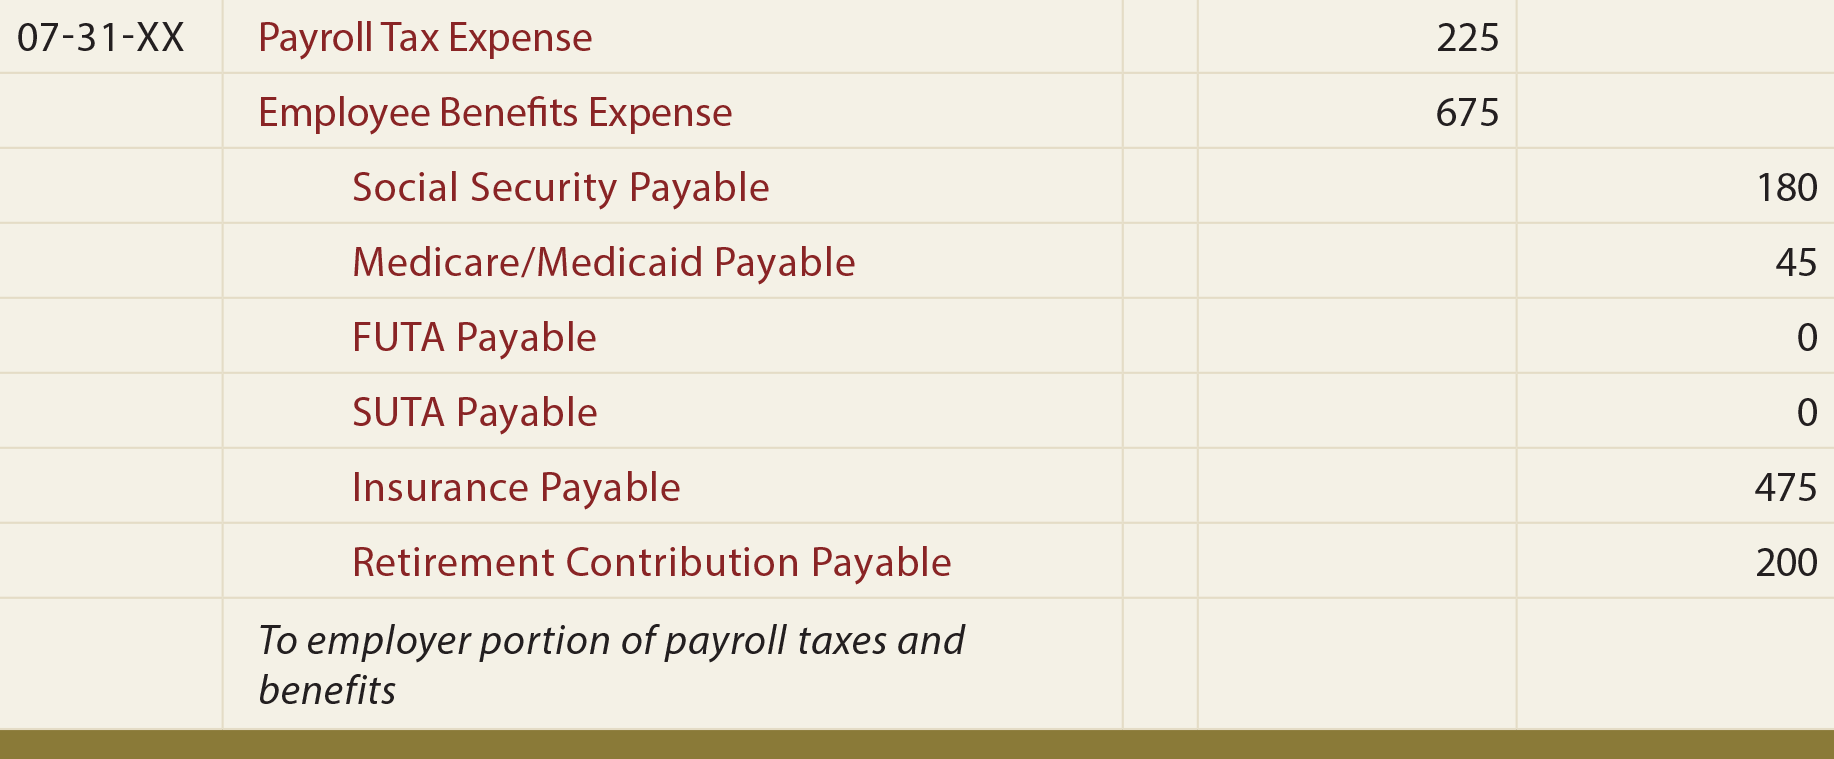 Payroll General Journal Entry - To record employer portion of payroll taxes and benefits